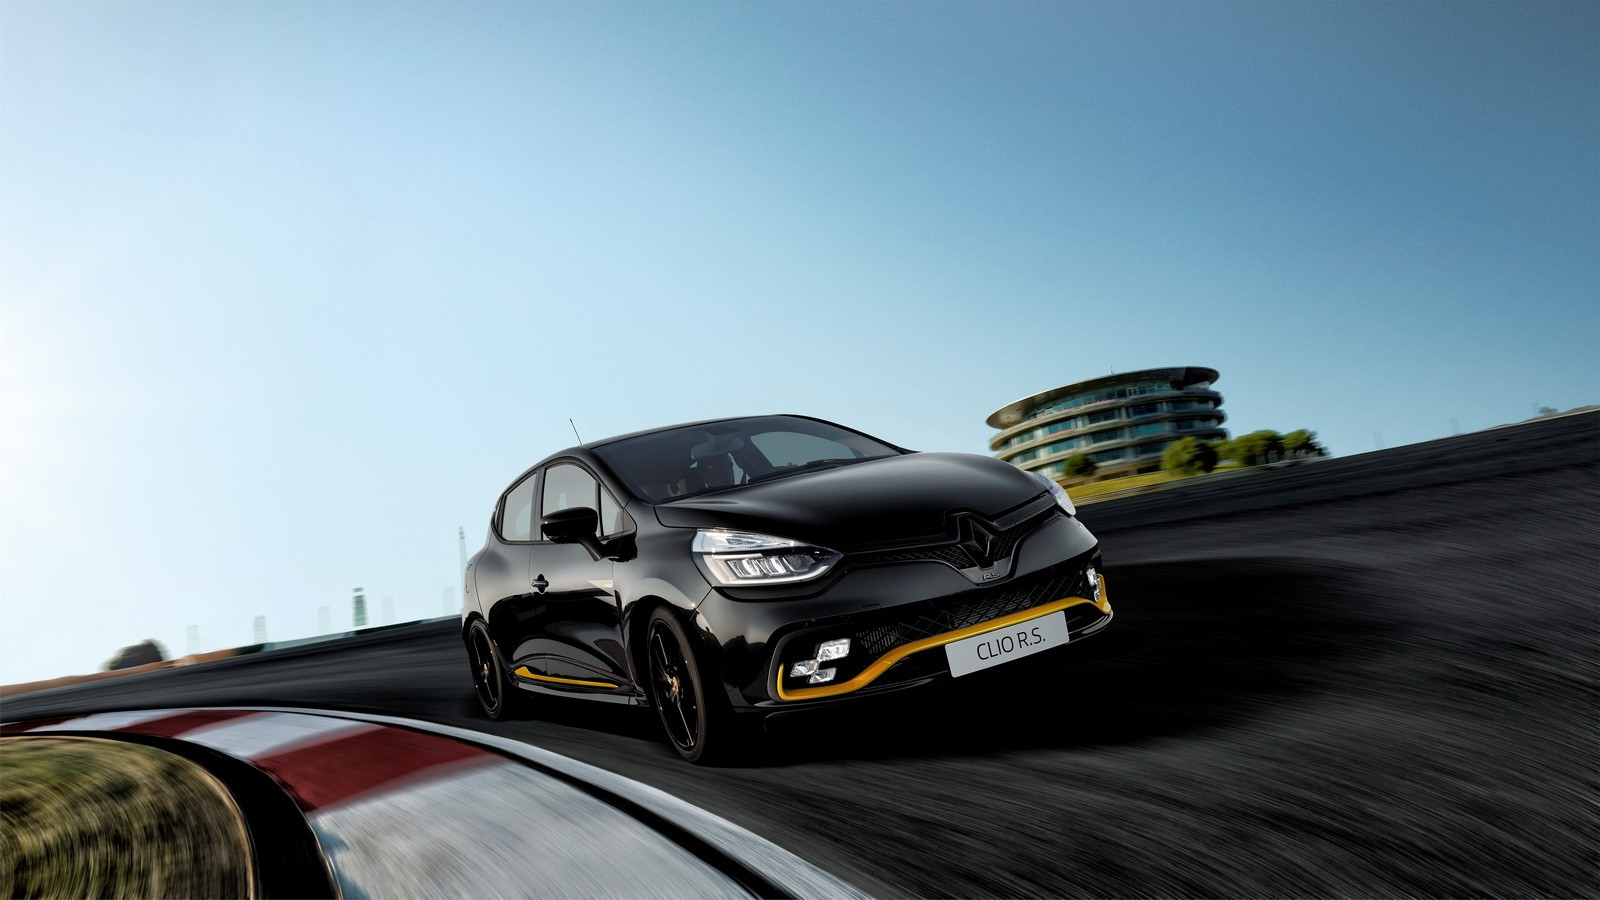 Renault Clio RS18 limited edition revealed for European market